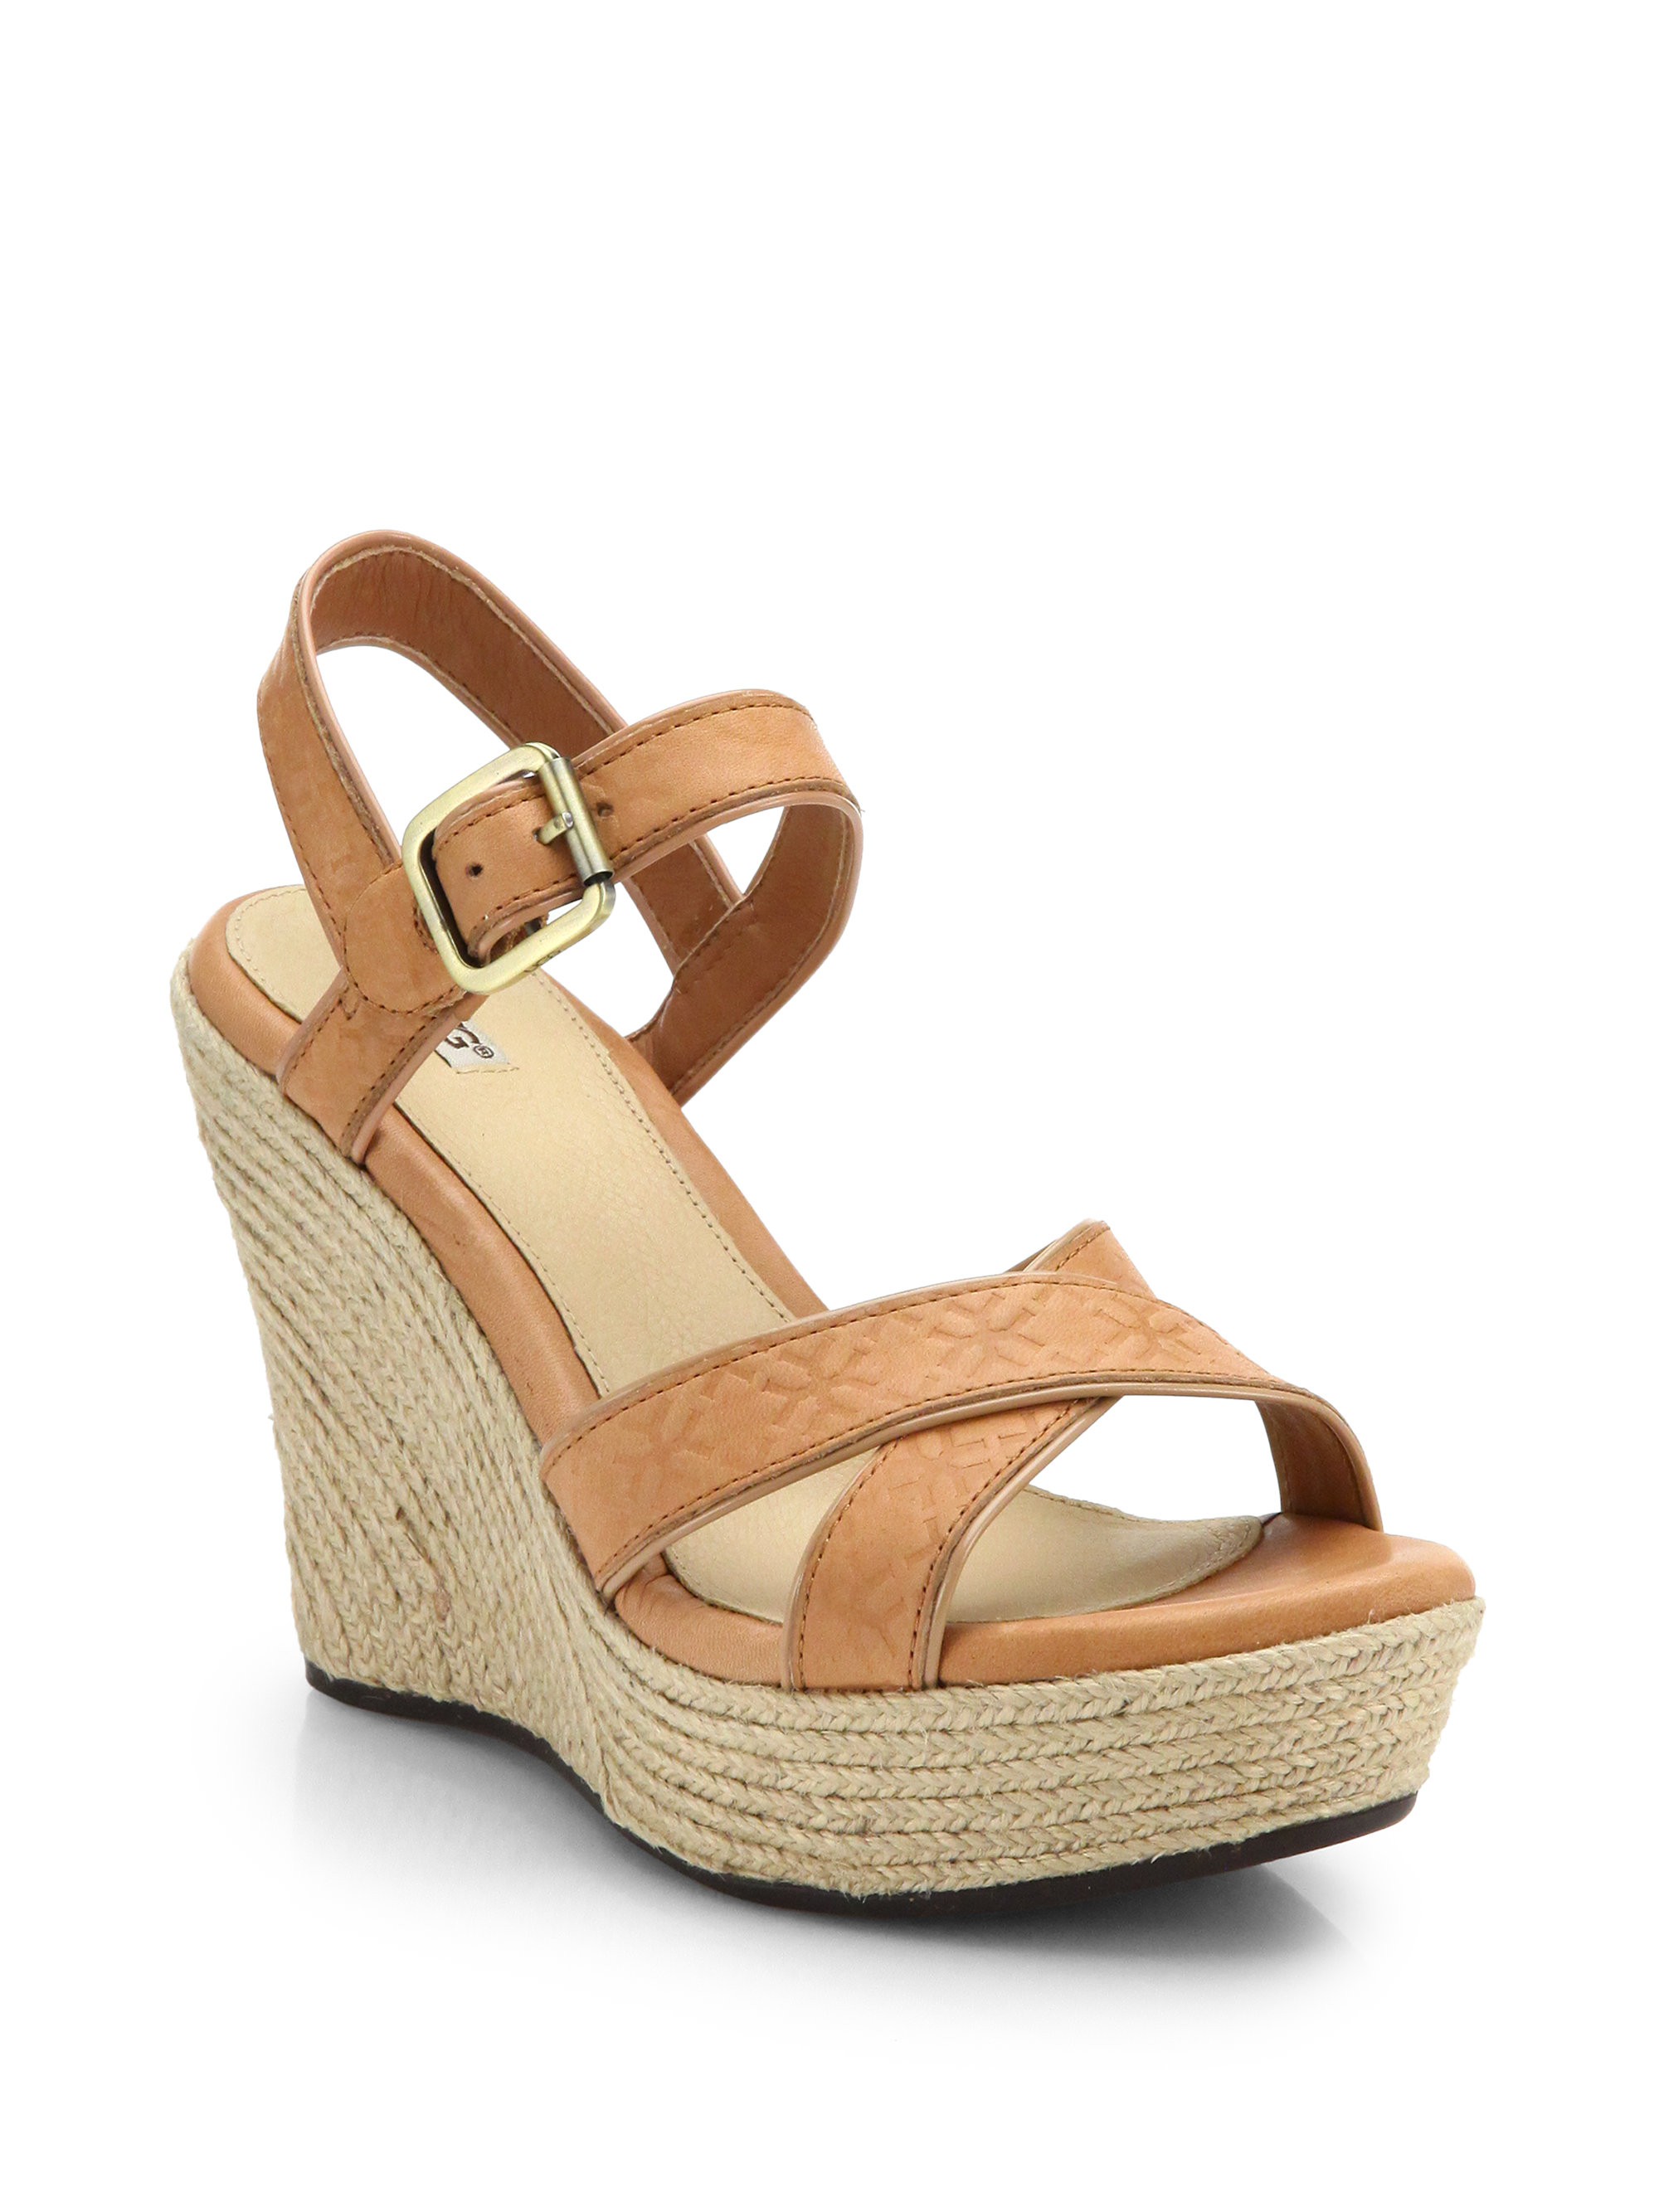 d8f94ecff95 UGG Brown Jackilyn Leather Wedge Sandals